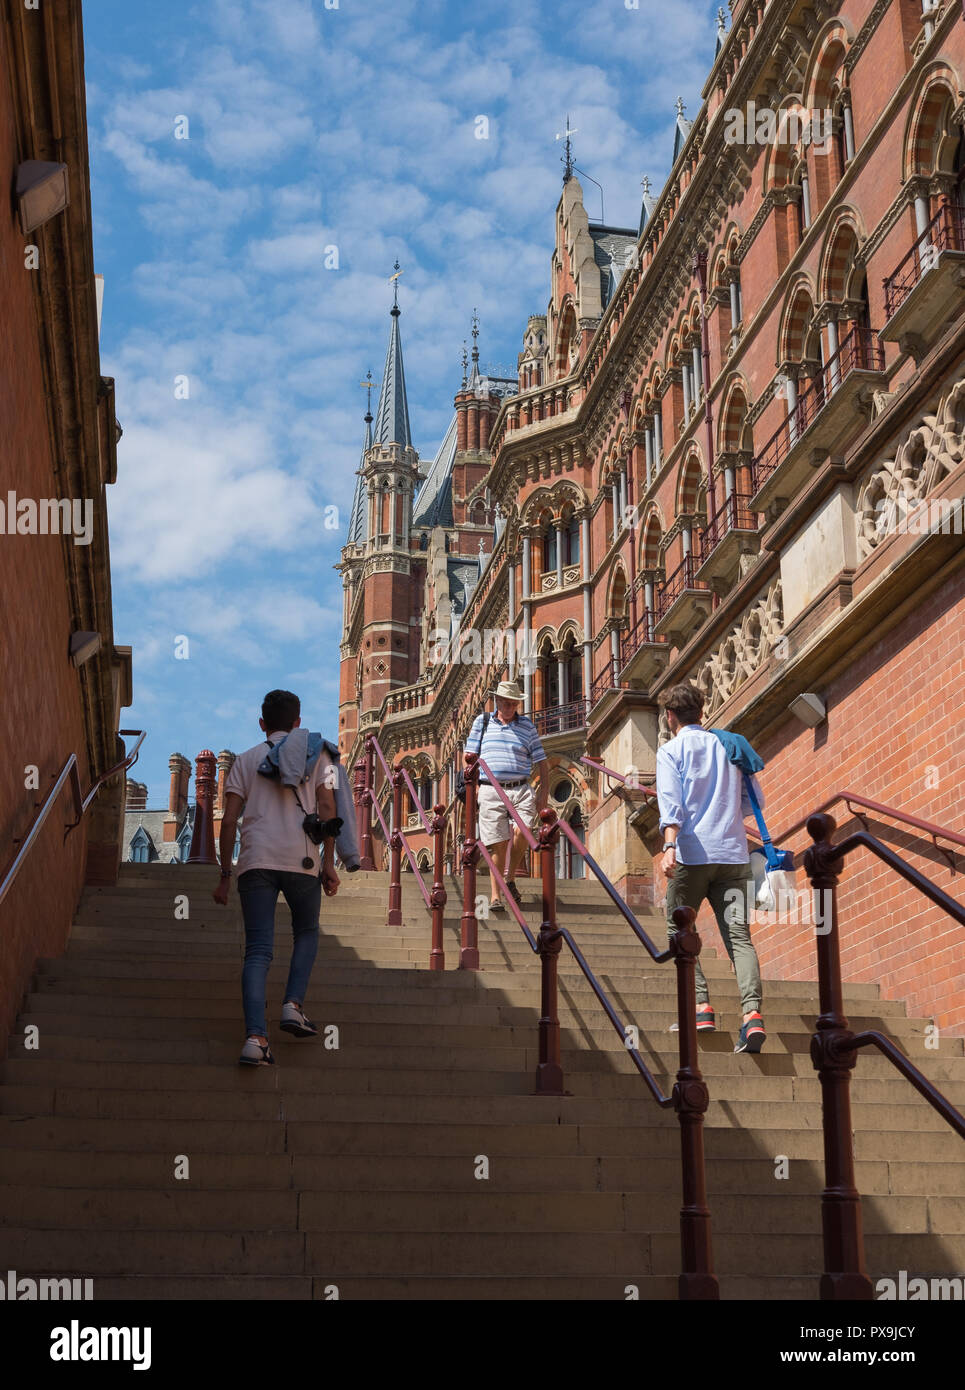 Steps leading up to St Pancras railway station from Pancras Road, London - Stock Photo